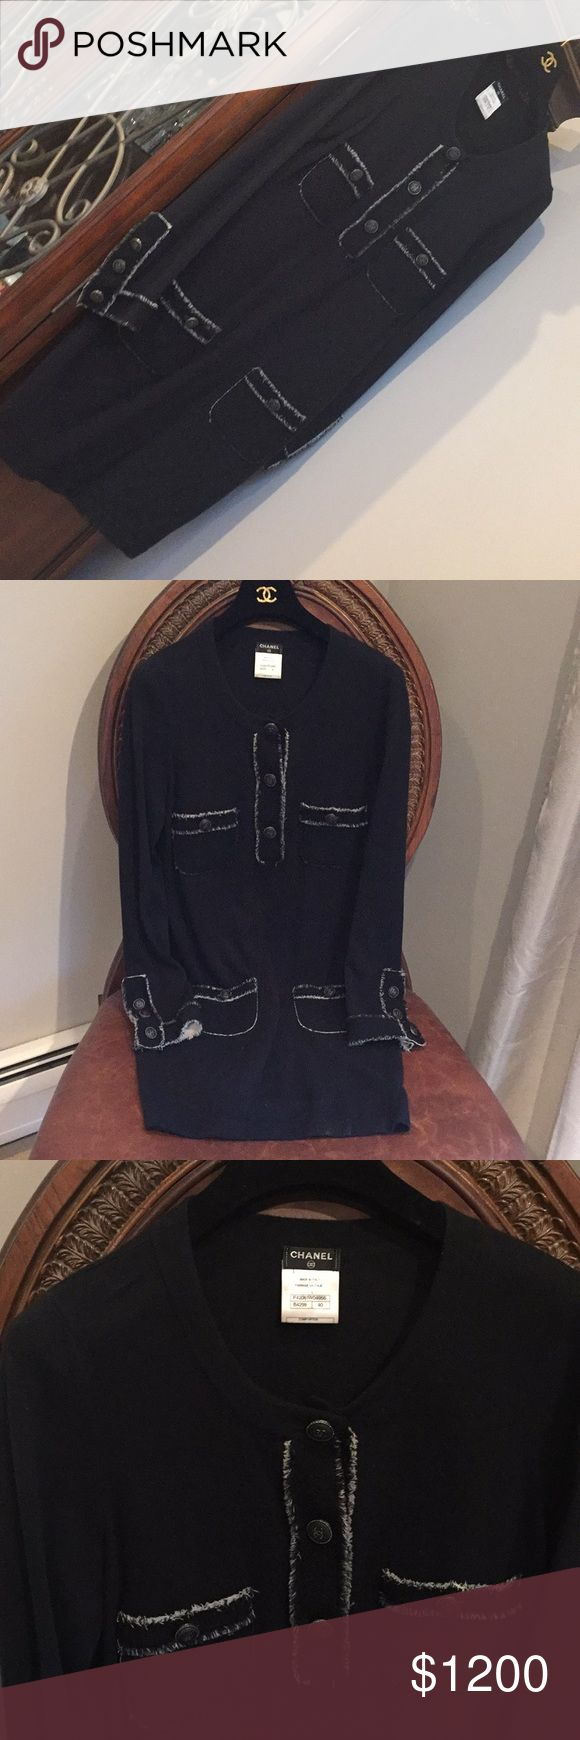 Authentic Chanel Cashmere dress, Authentic Chanel Cashmere dress, Black, knee length, four packets,  Long sleeves. Great with leggings or boots. Used a few times with care. Size 40 Excellent condition. CHANEL Dresses Long Sleeve